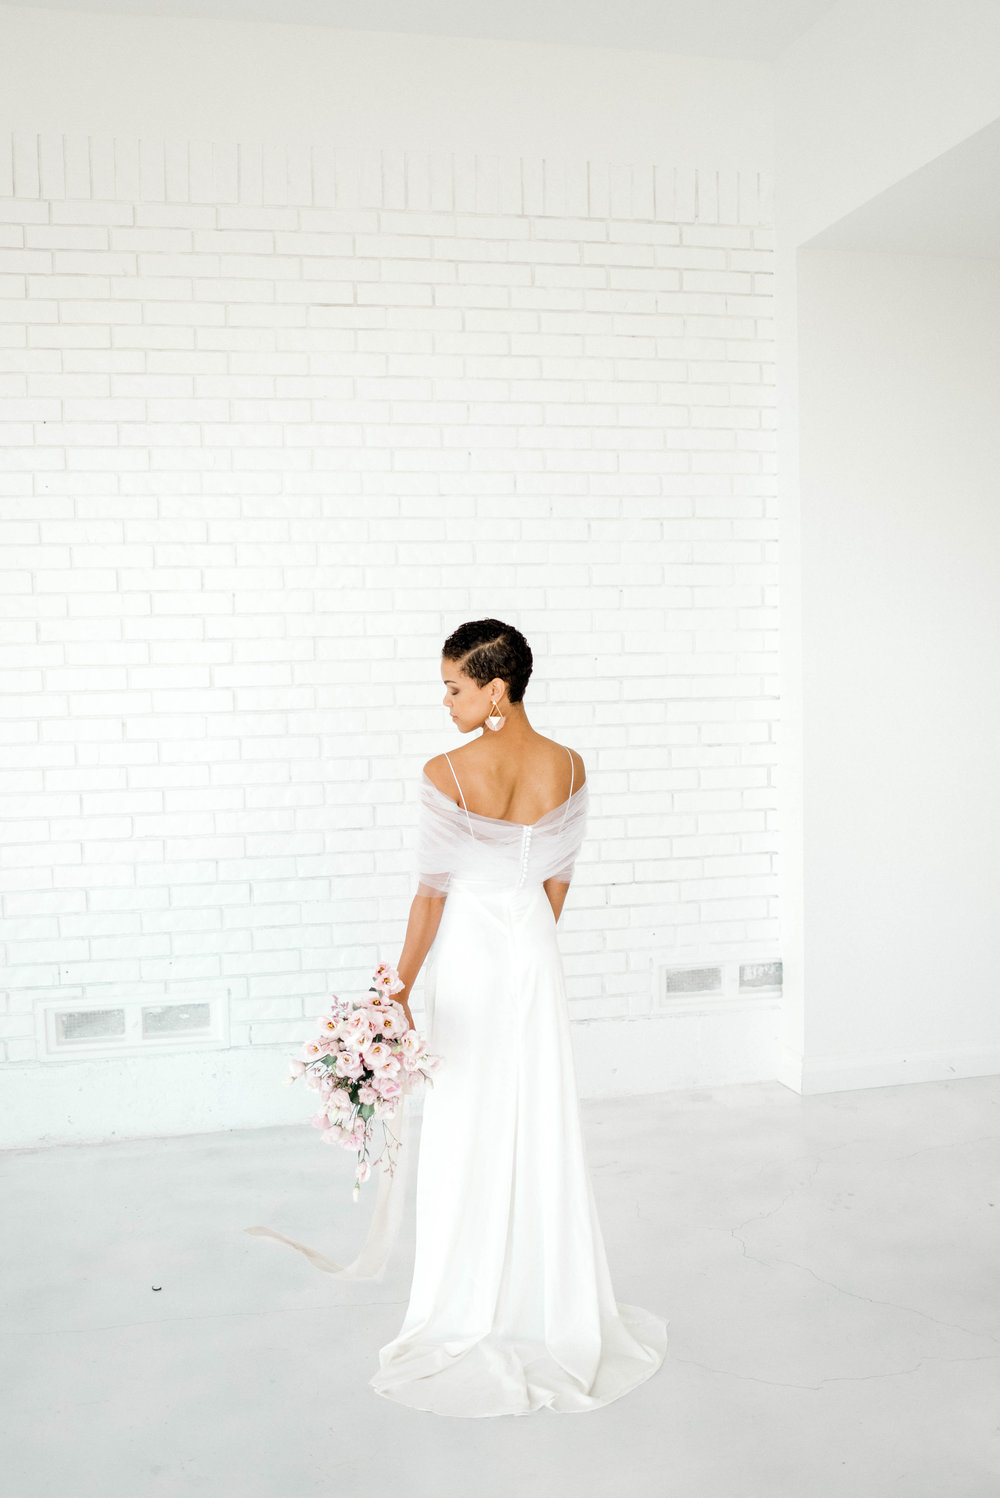 gray-door-photography-bridal-portraits-dallas-photographer-steph-erffmeyer17.jpg